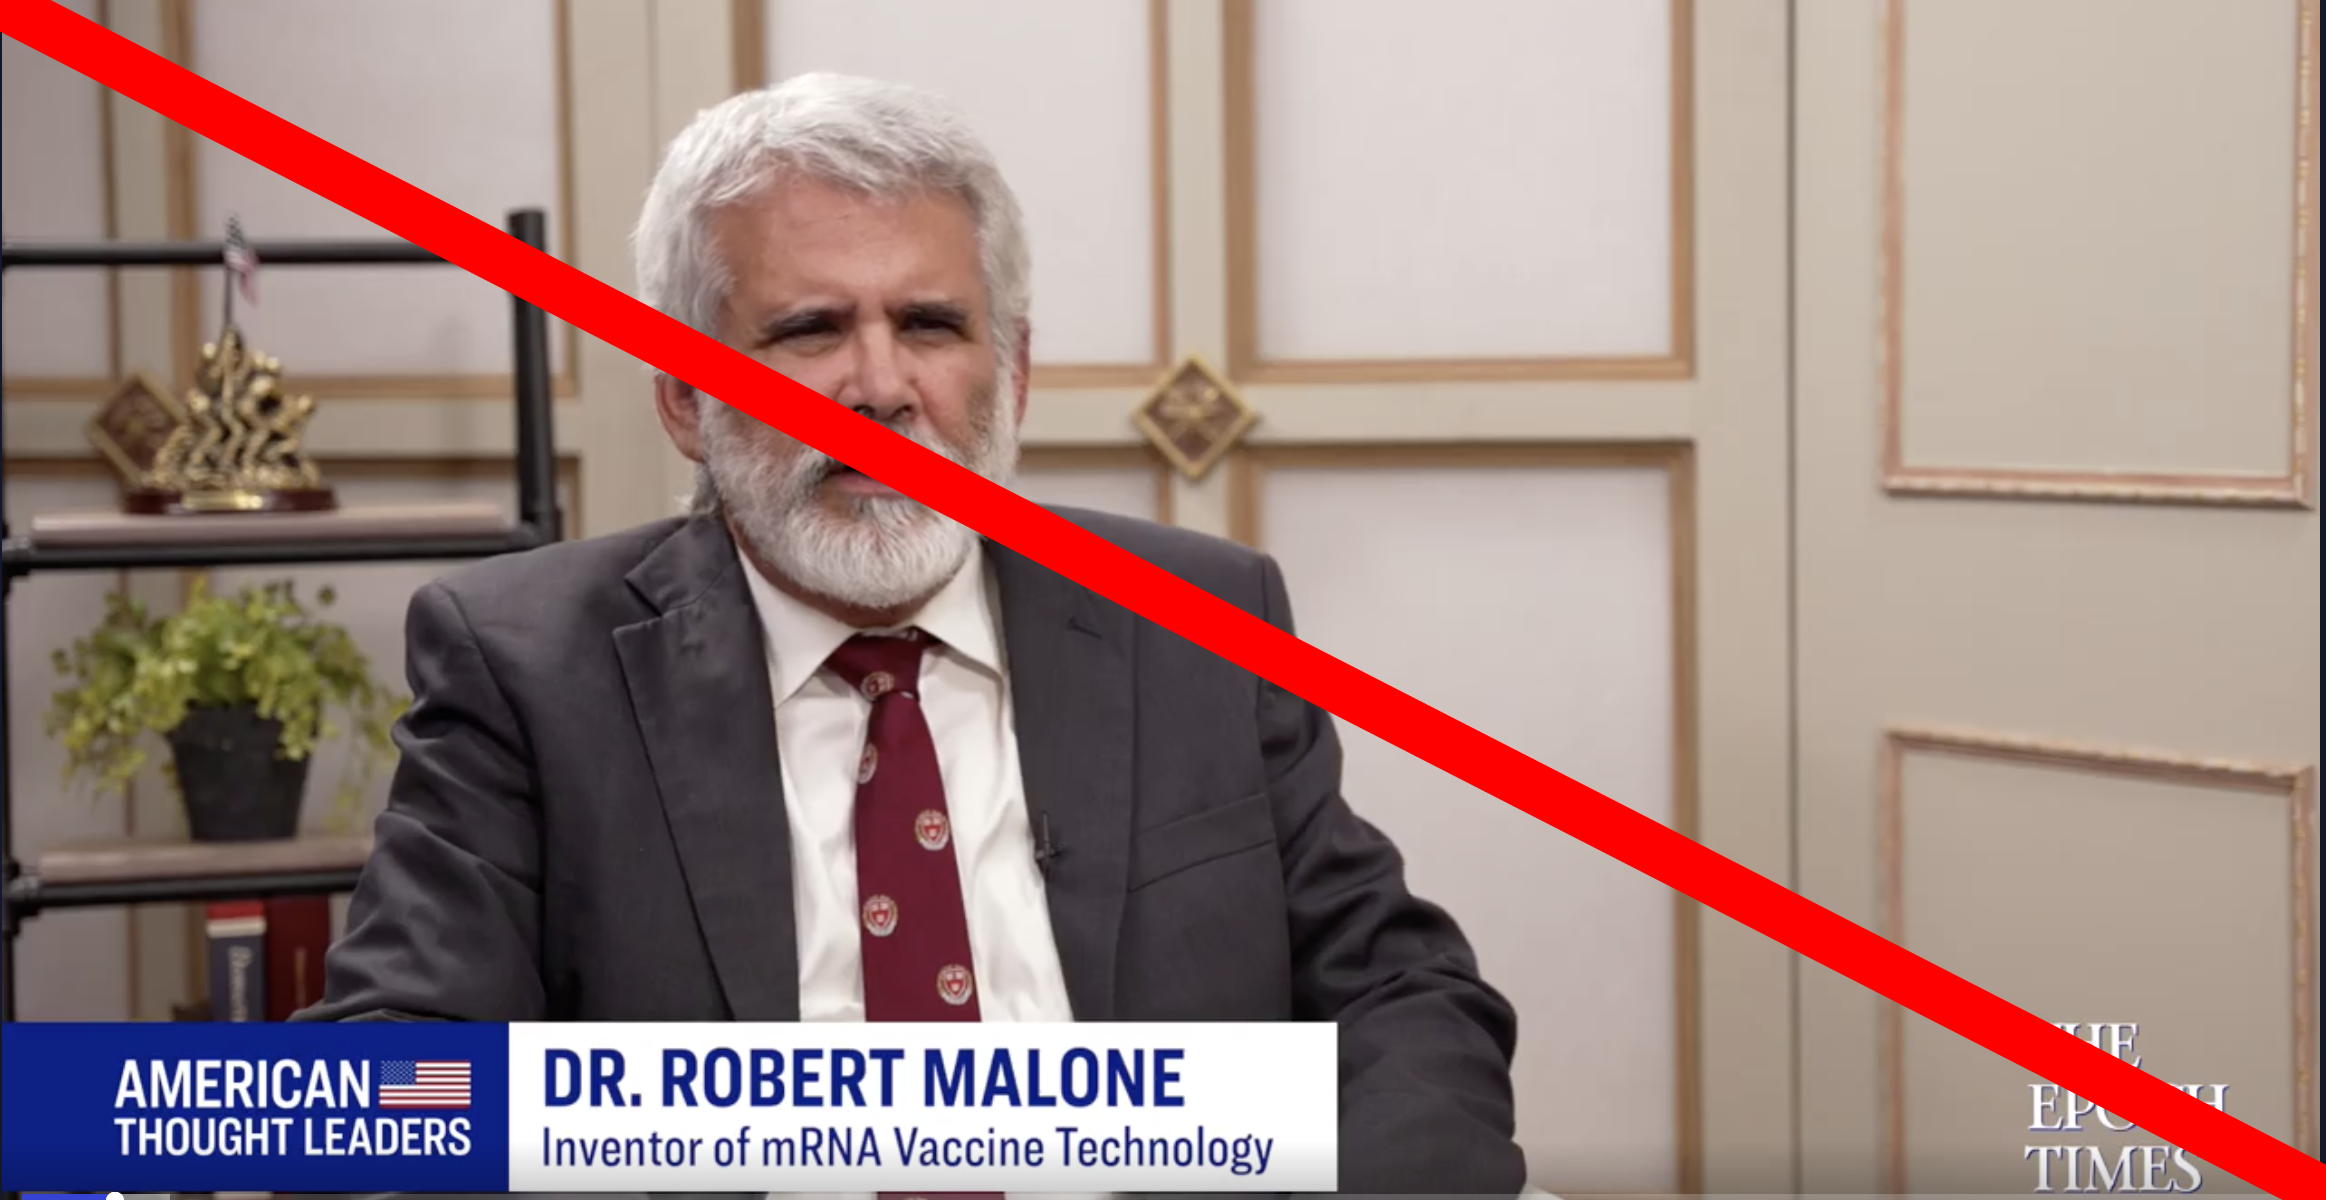 Double Check: Who Is Dr. Robert Malone?